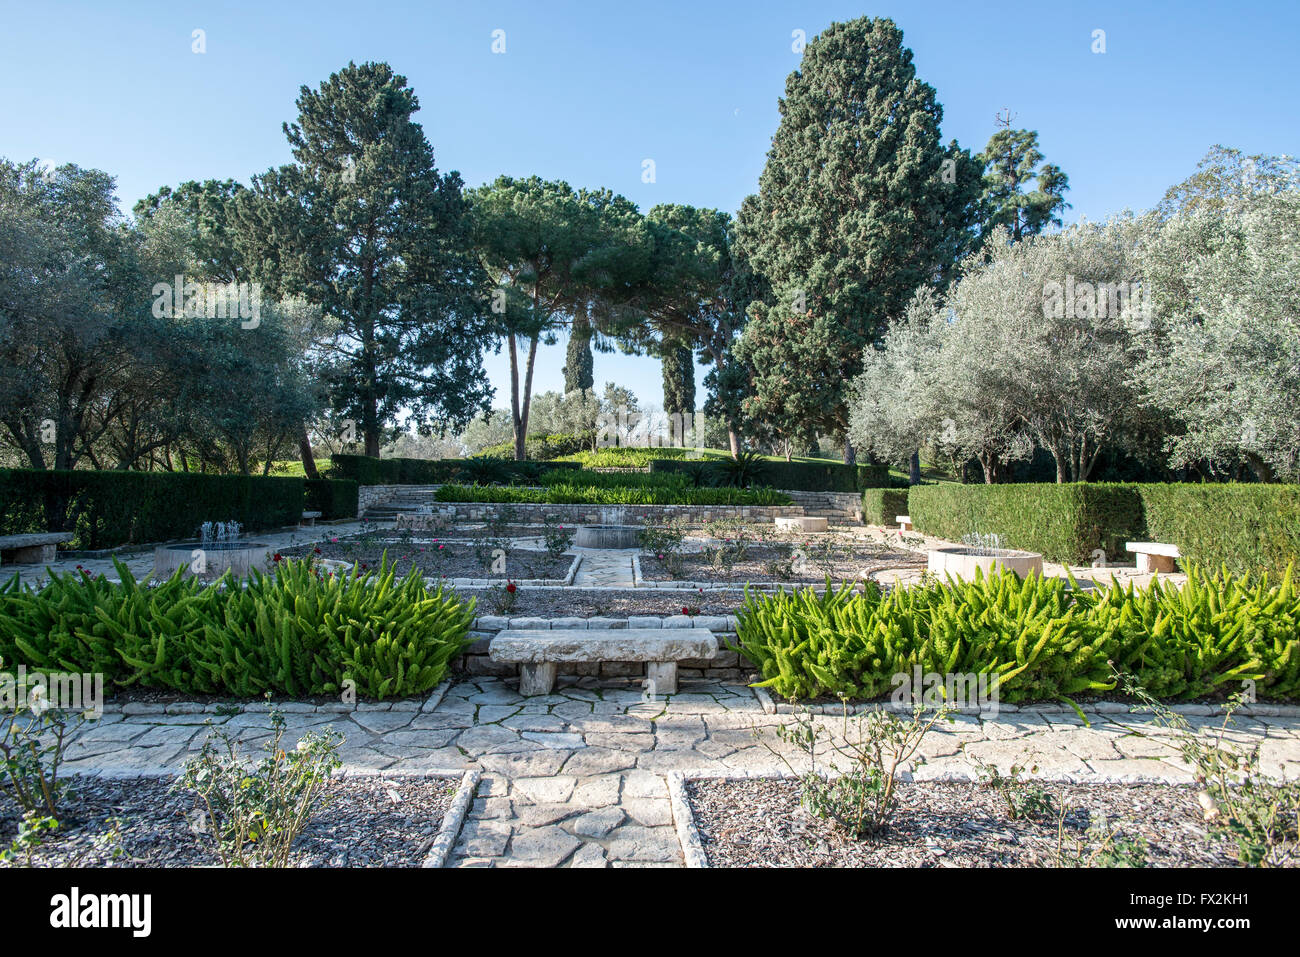 Ramat Hanadiv Is A Nature Park And Garden Covering 4.5 Km At The Southern  End Of Mount Carmel, Israel